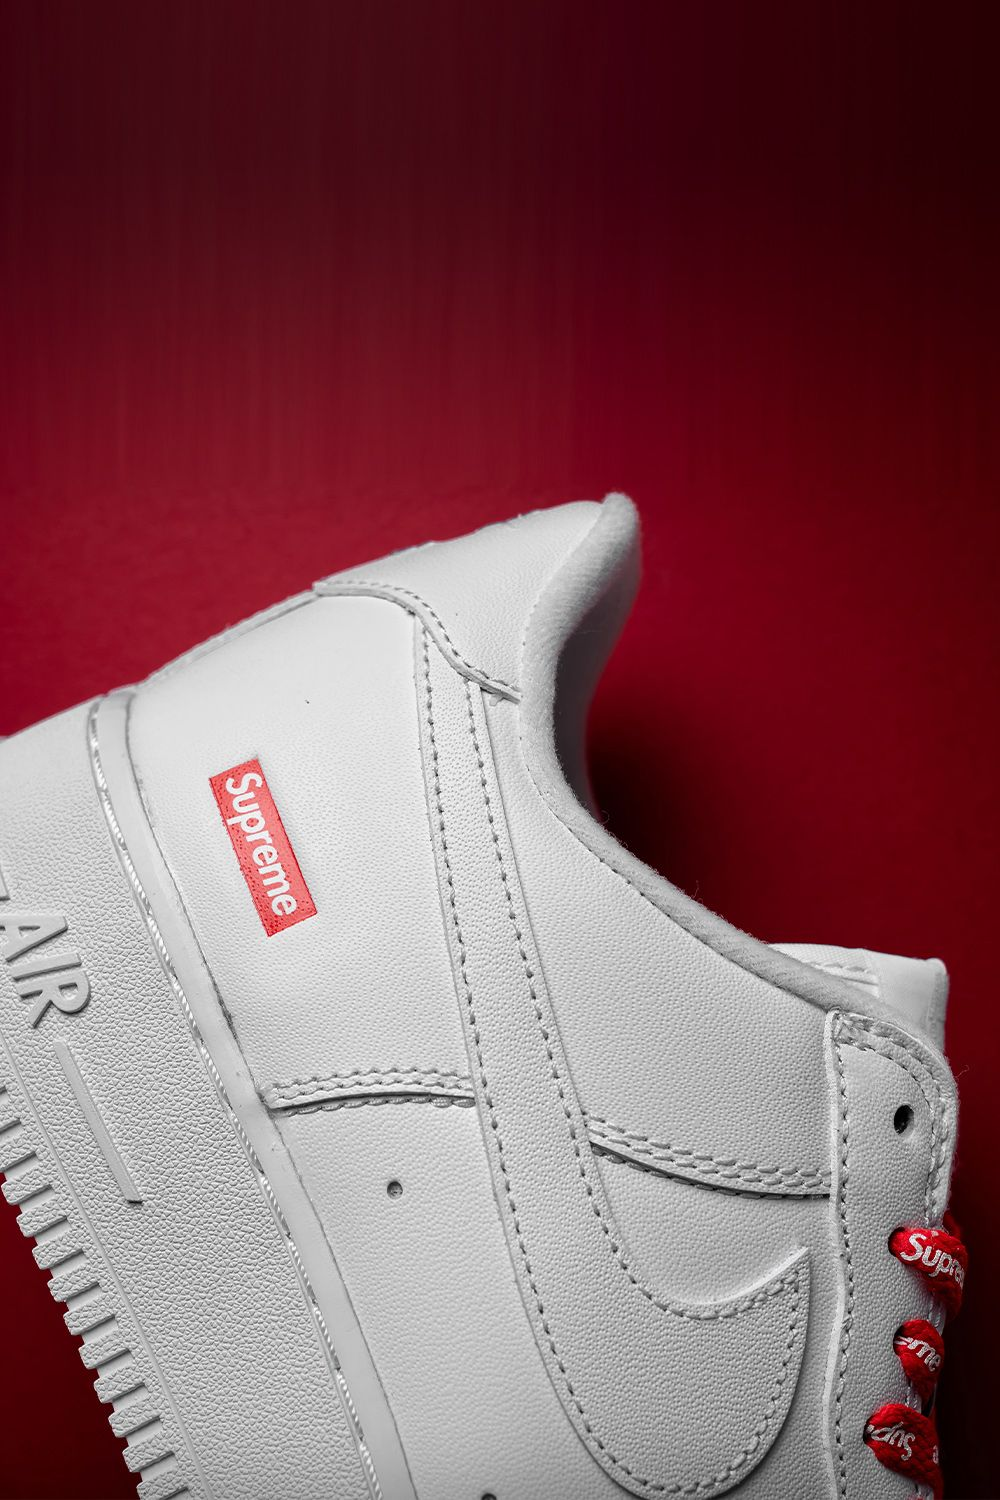 Nike Air Force 1 Low Supreme Mini Box Logo White Cu9225 100 2020 In 2020 Streetwear Shoes Air Force One Shoes Supreme Shoes